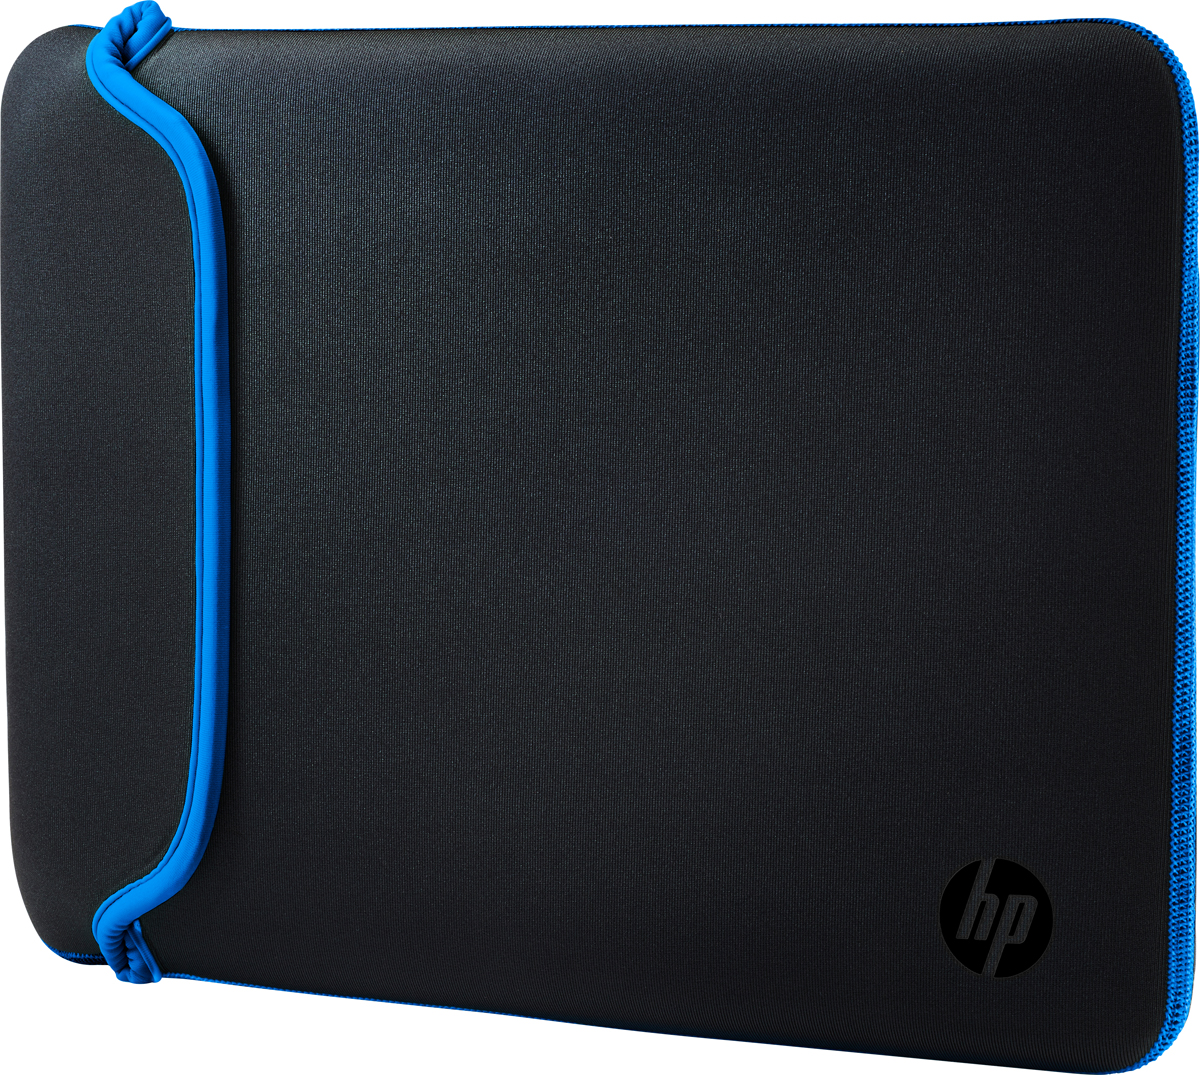 HP Neoprene Sleeve чехол для ноутбука 15.6, Black Blue (V5C31AA)1000391211